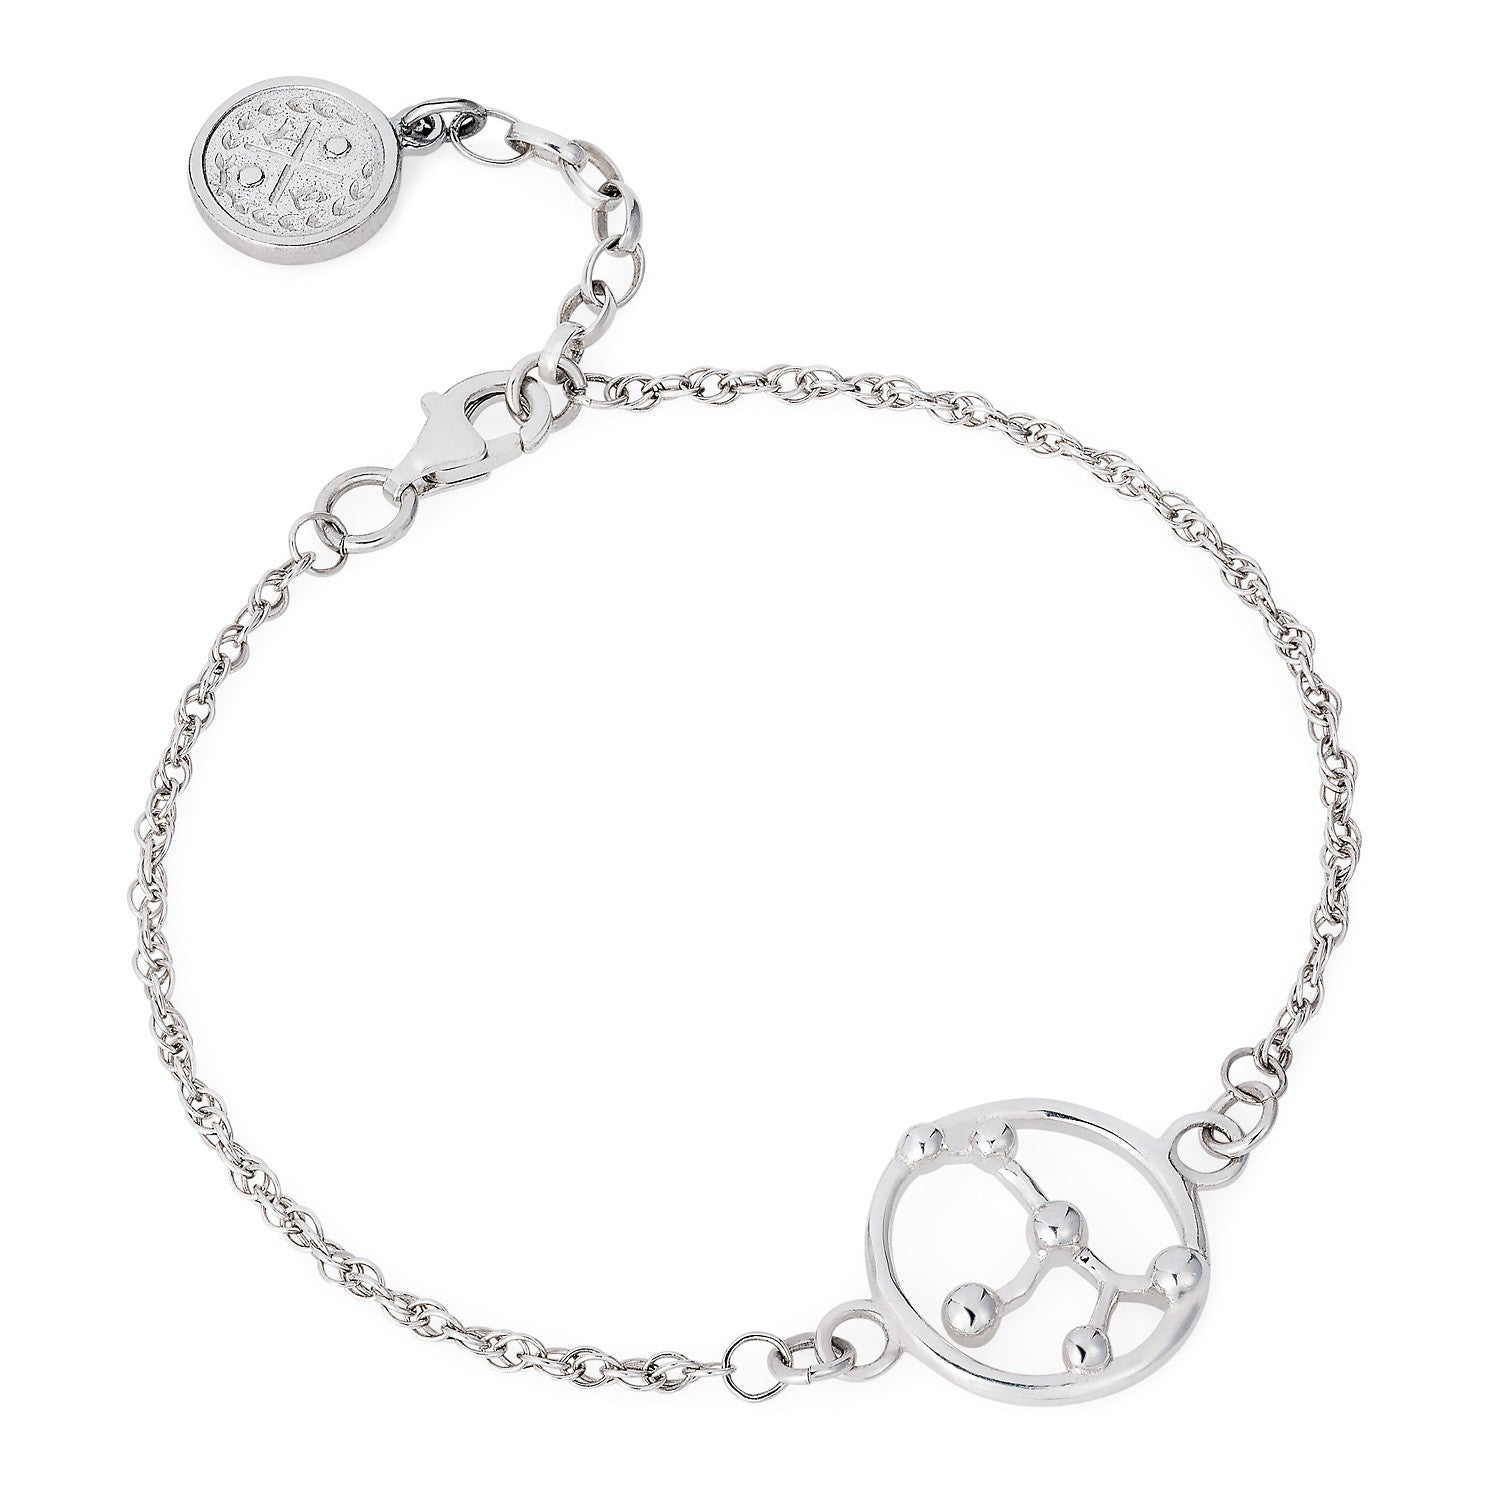 star sign astrology Constellation Bracelet